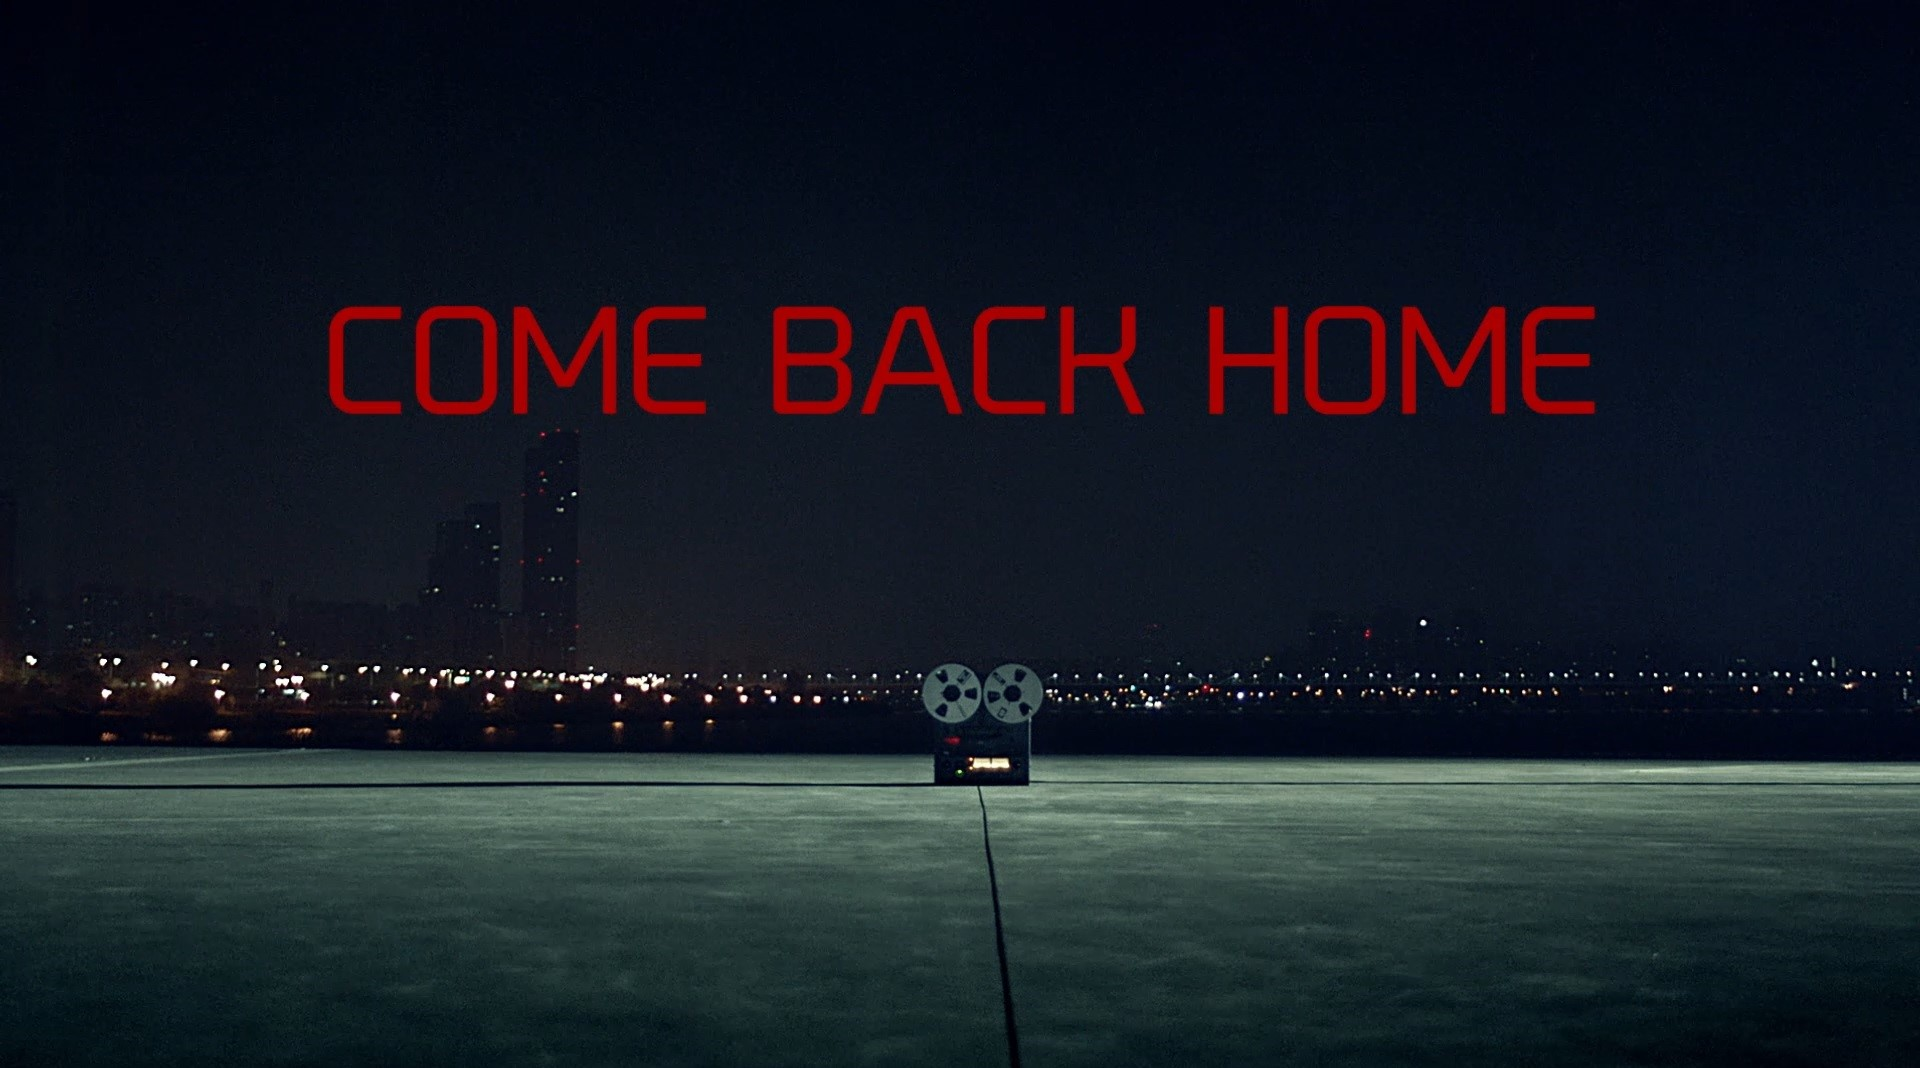 BTS (방탄소년단) - Come Back Home M/V